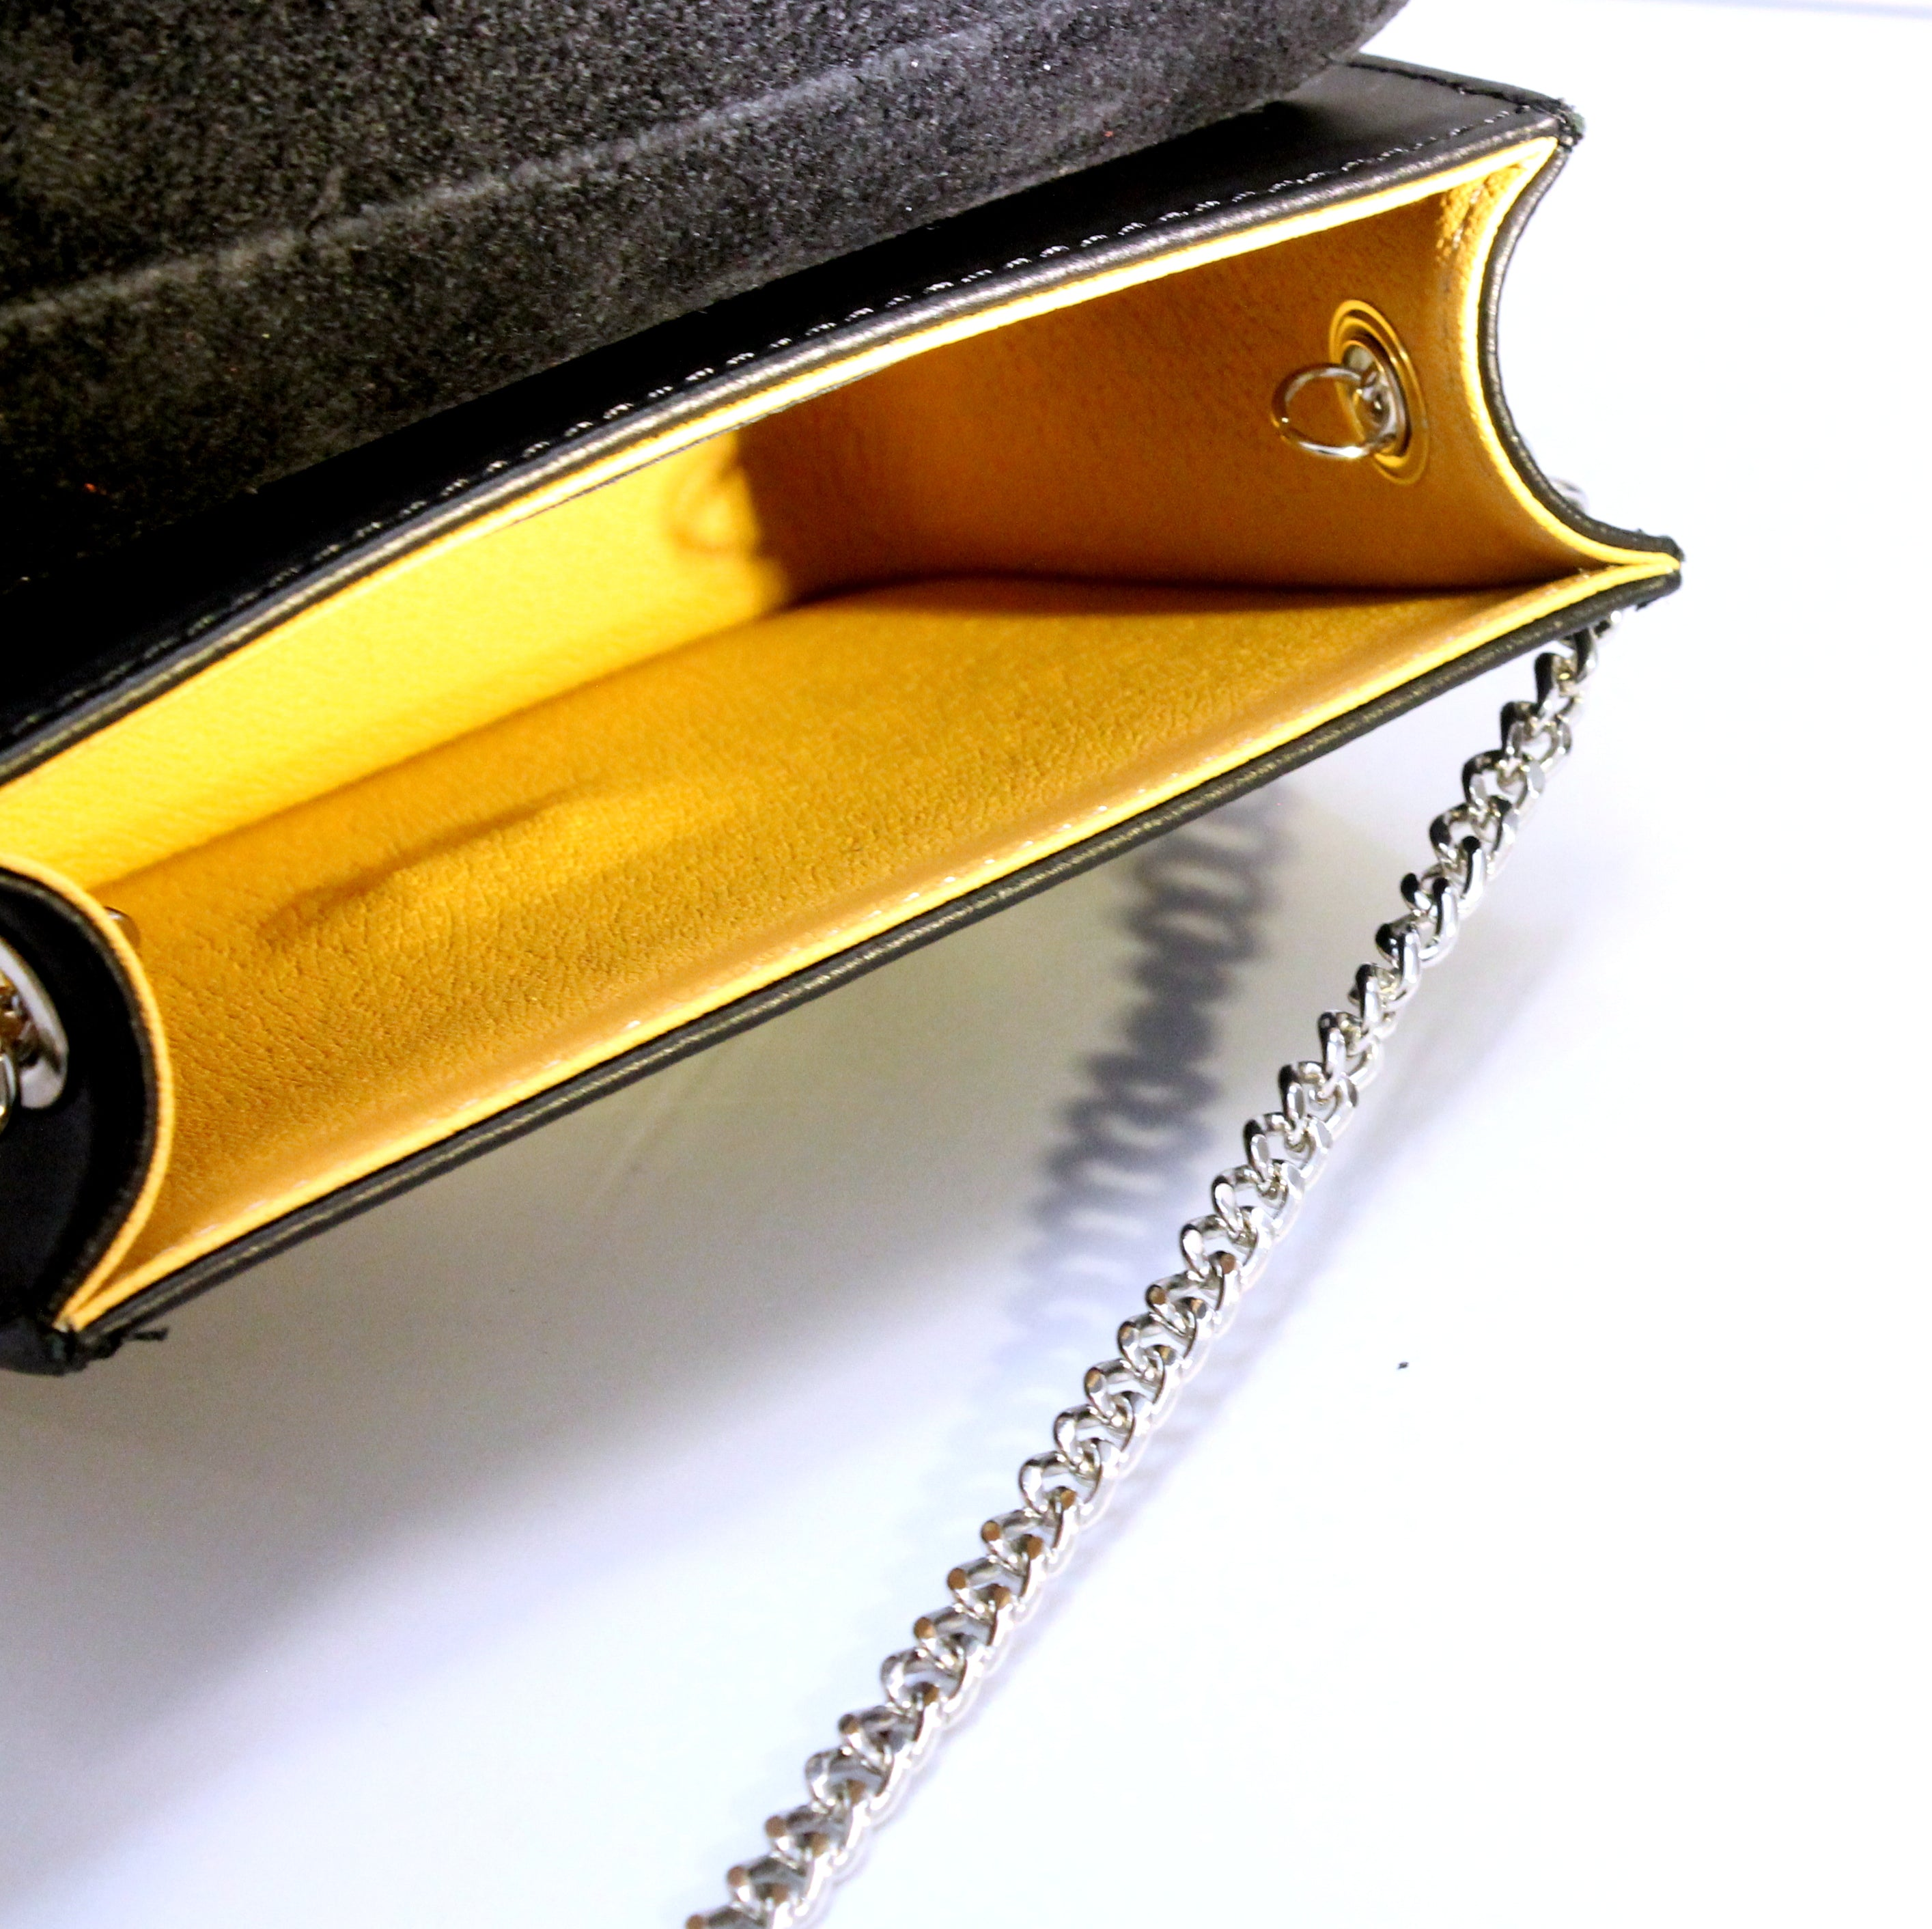 DİDEM - Black leather bag with eyes detail